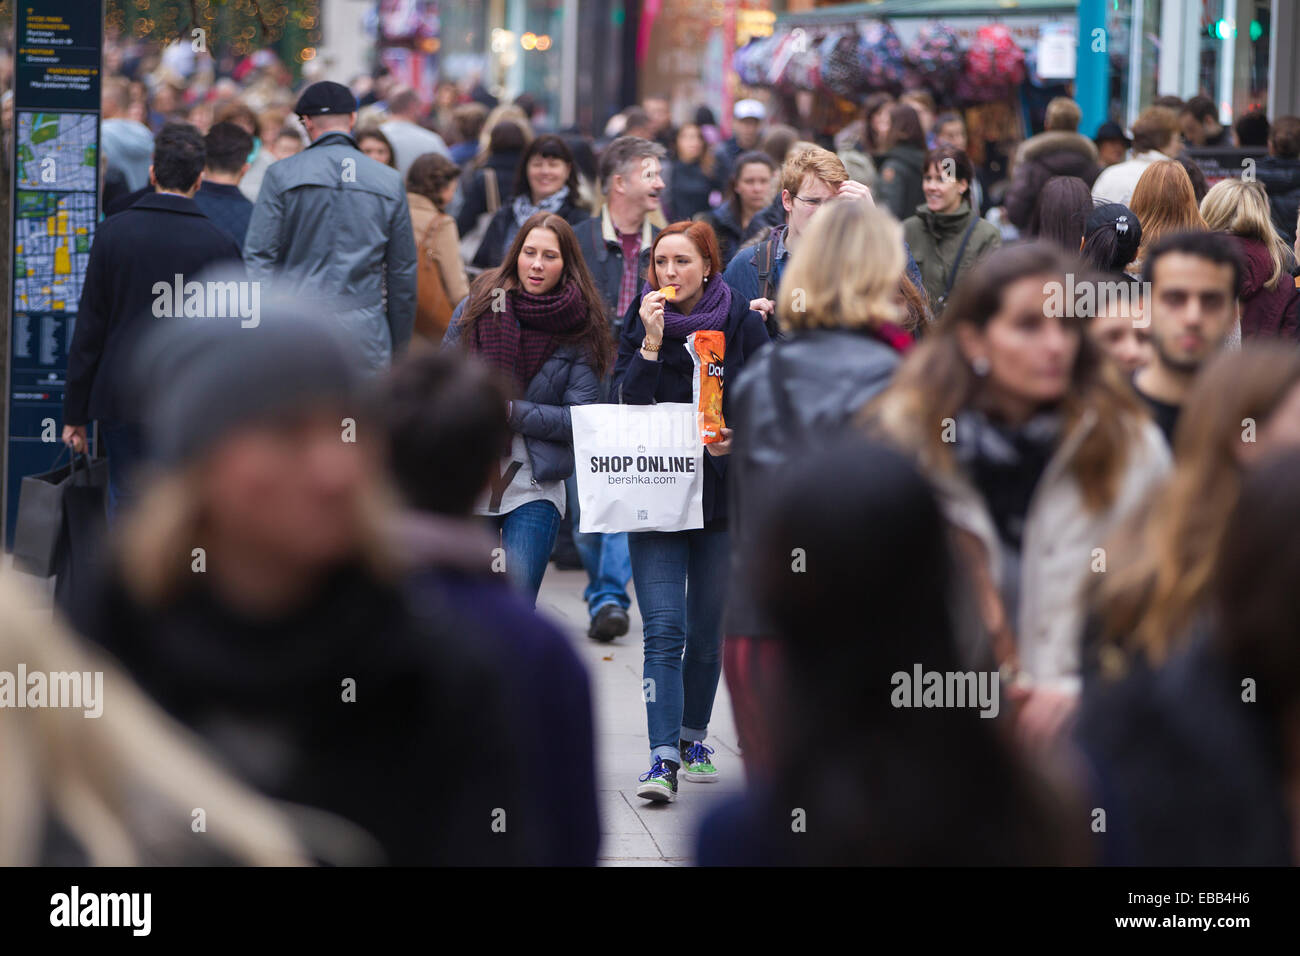 Black Friday, Oxford Street, London, UK 28.11.2014 Pre Christmas shoppers came out in large numbers to Oxford Street, - Stock Image